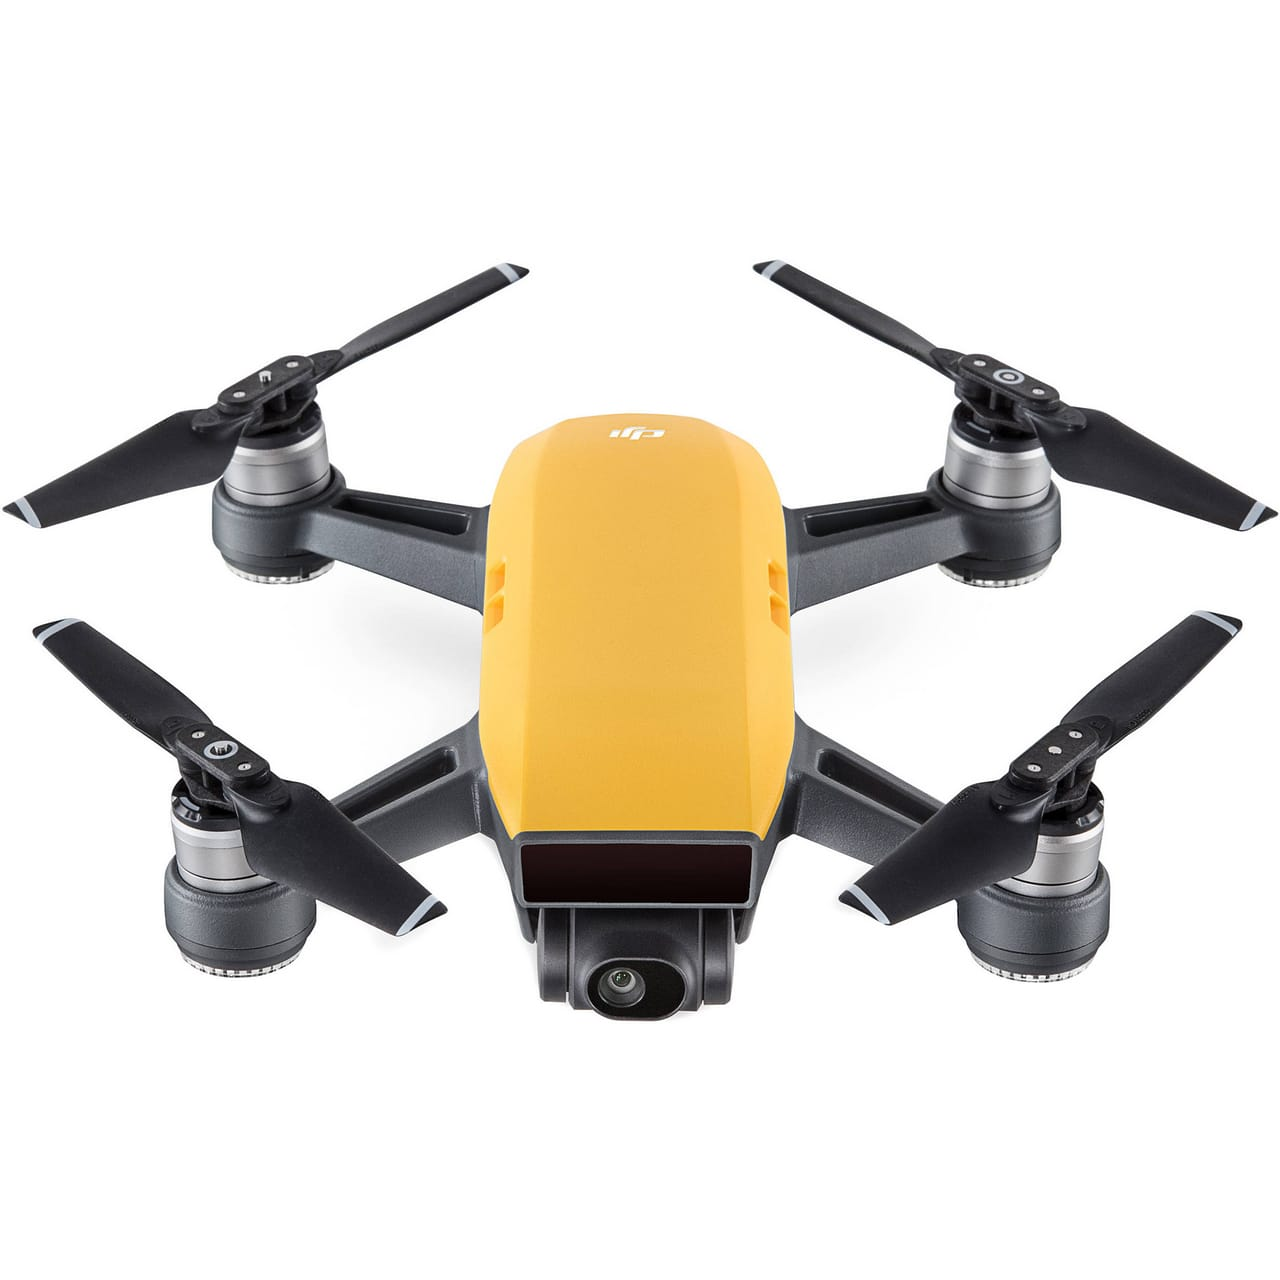 Квадрокоптер (жёлтый) DJI SPARK Fly More Combo (EU) Sunrise Yellow, DJI квадрокоптер dji mavic air fly more combo eu arctic white